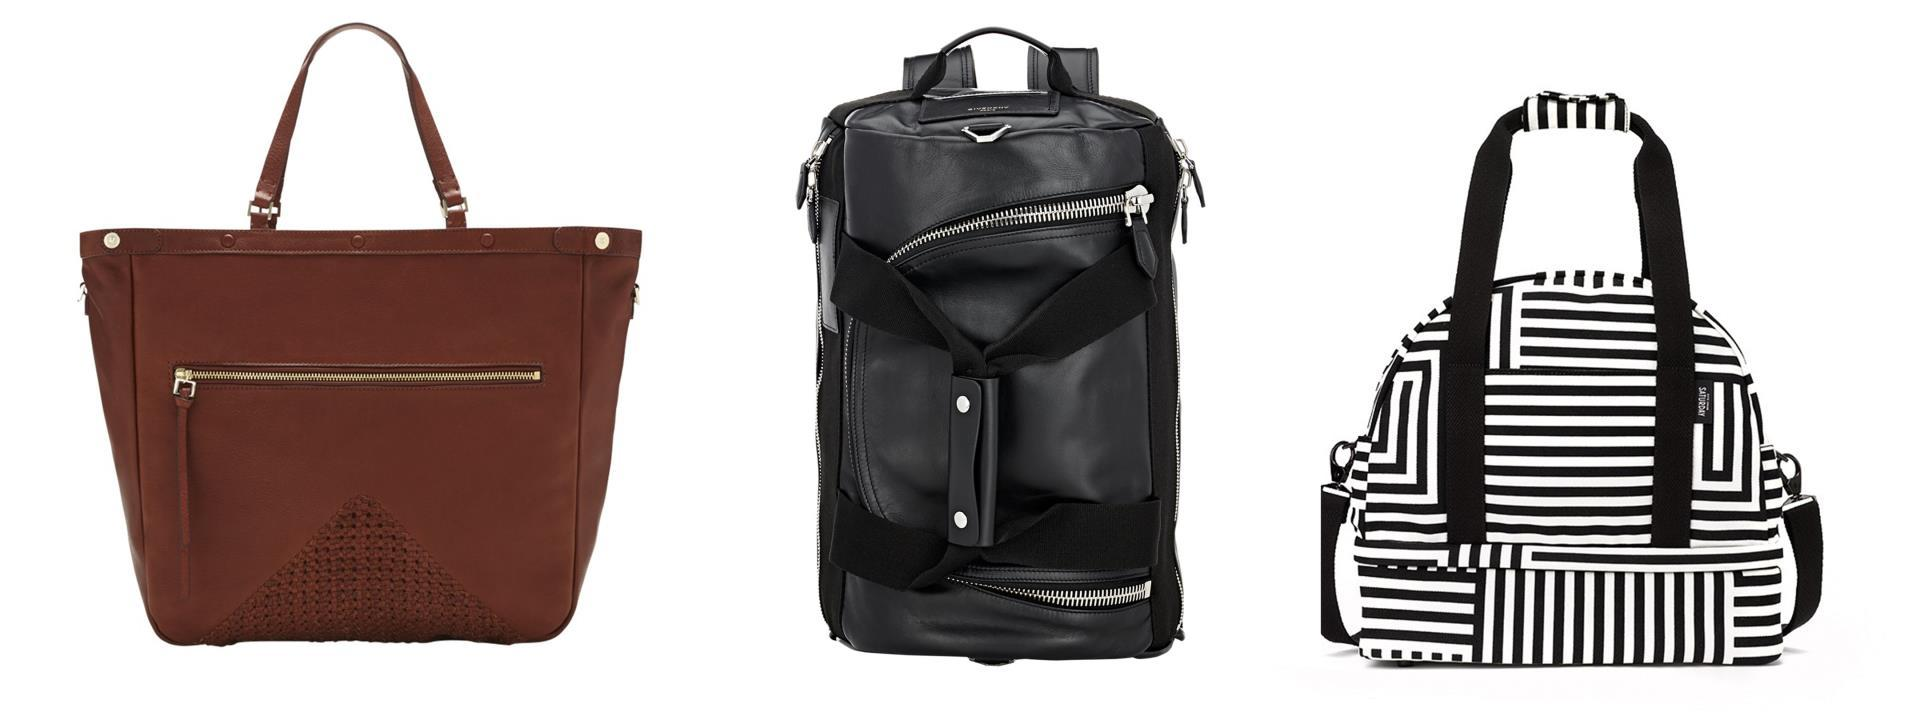 06a589fa1568 It s Time To Rethink Your Gym Bag - Furthermore